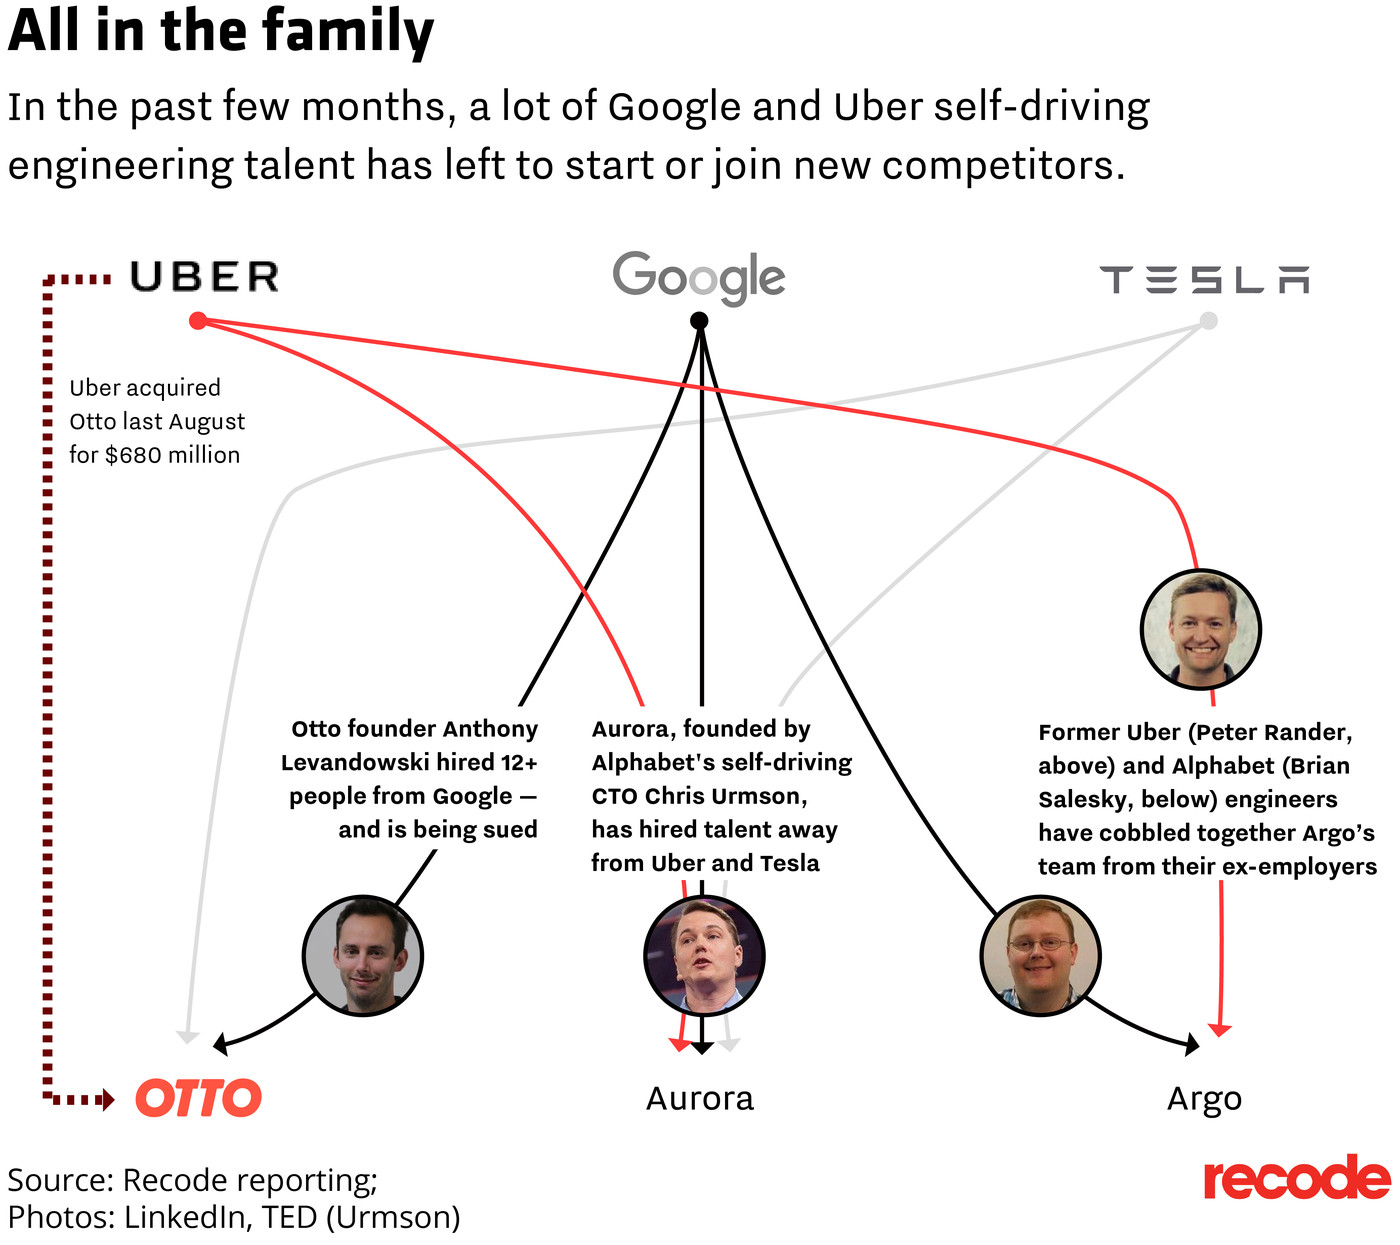 Self-driving talent is fleeing Google and Uber to catch the